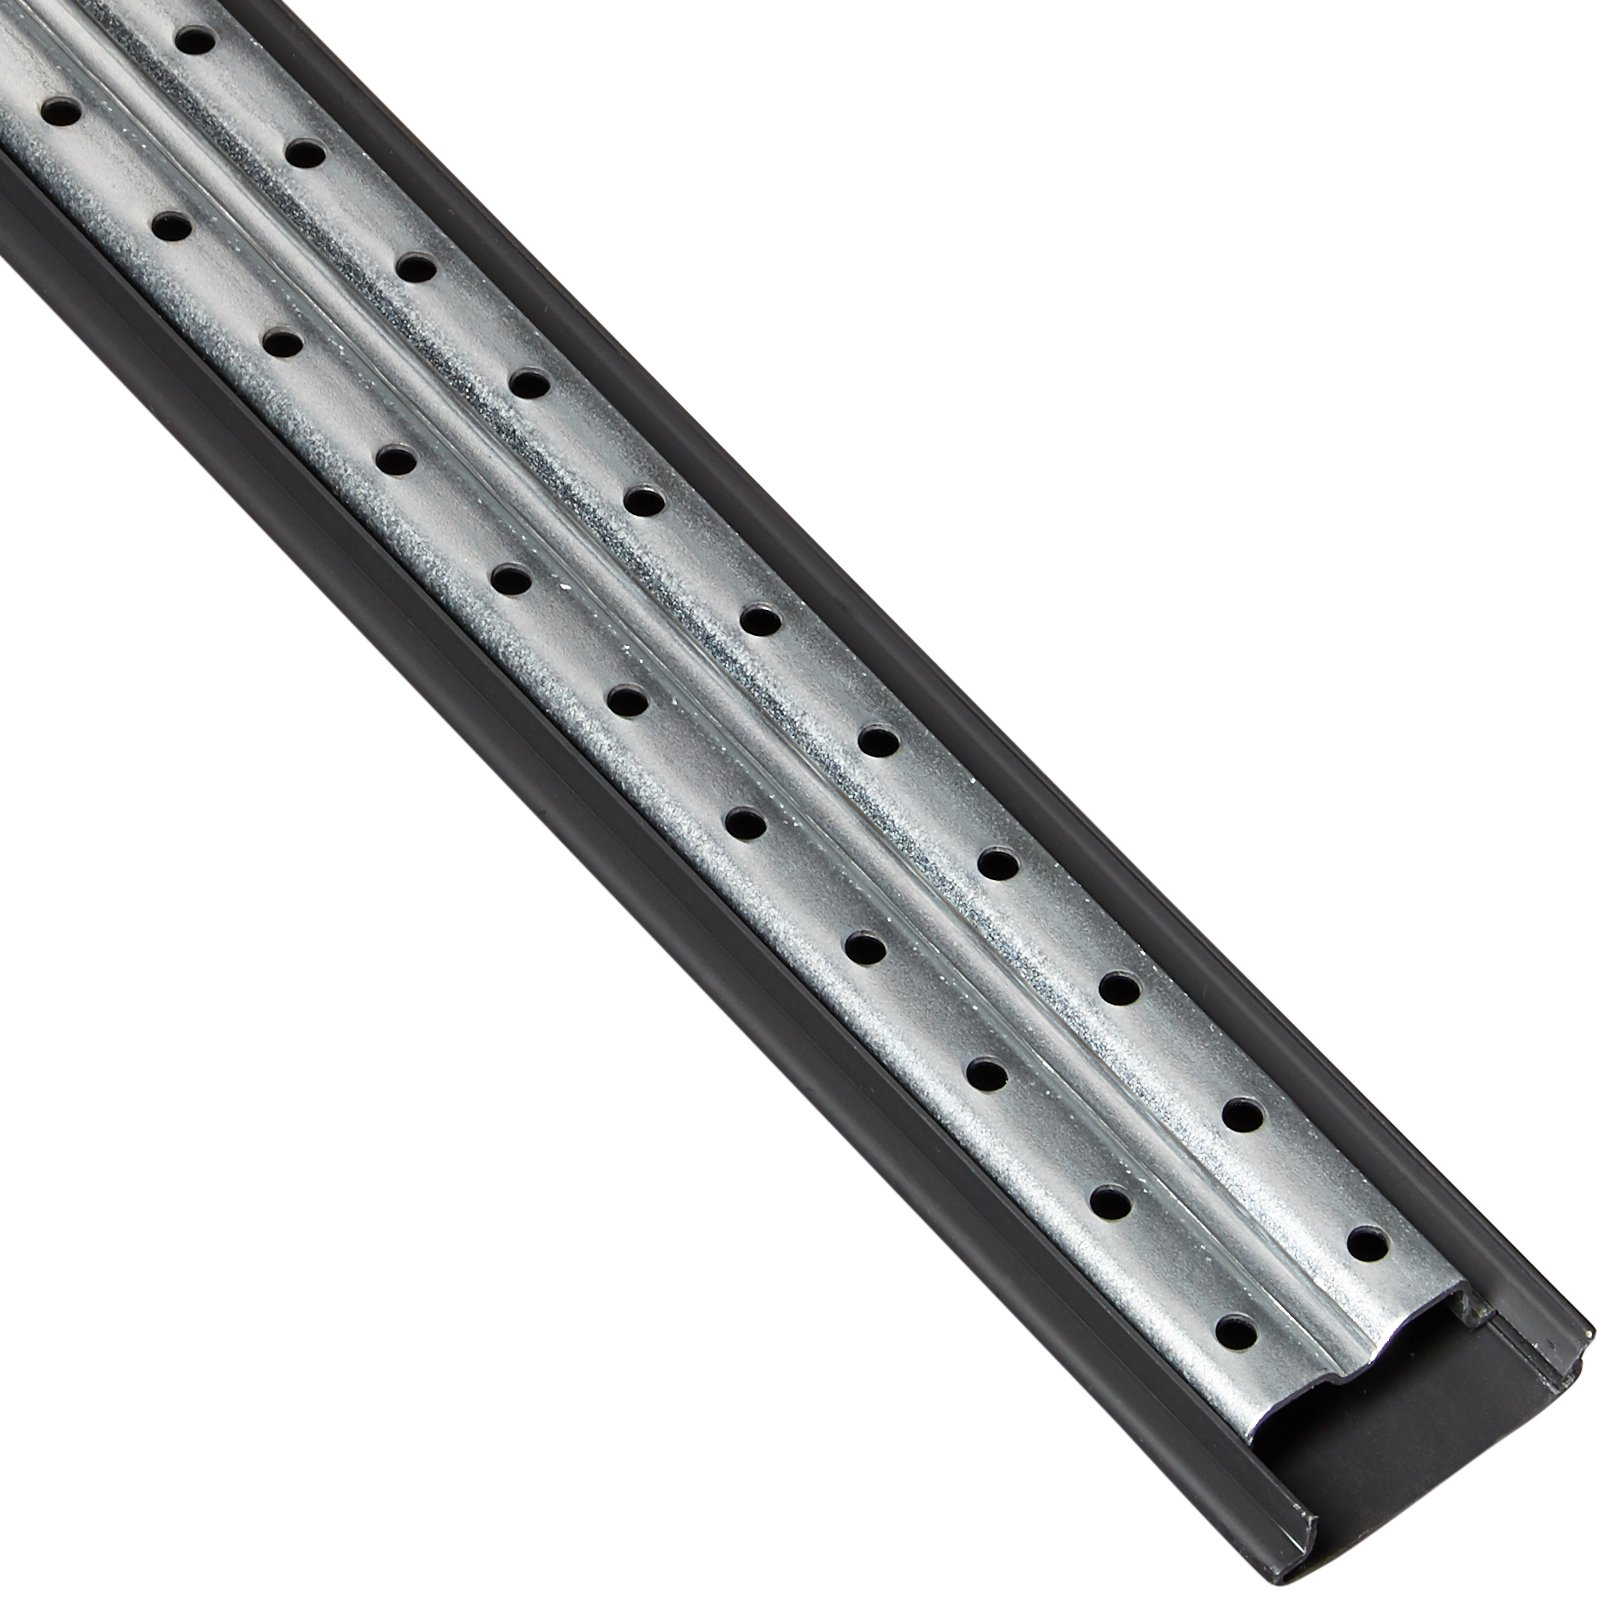 Rubbermaid FastTrack Garage Storage System Rail, 84'', 1784416 by Rubbermaid